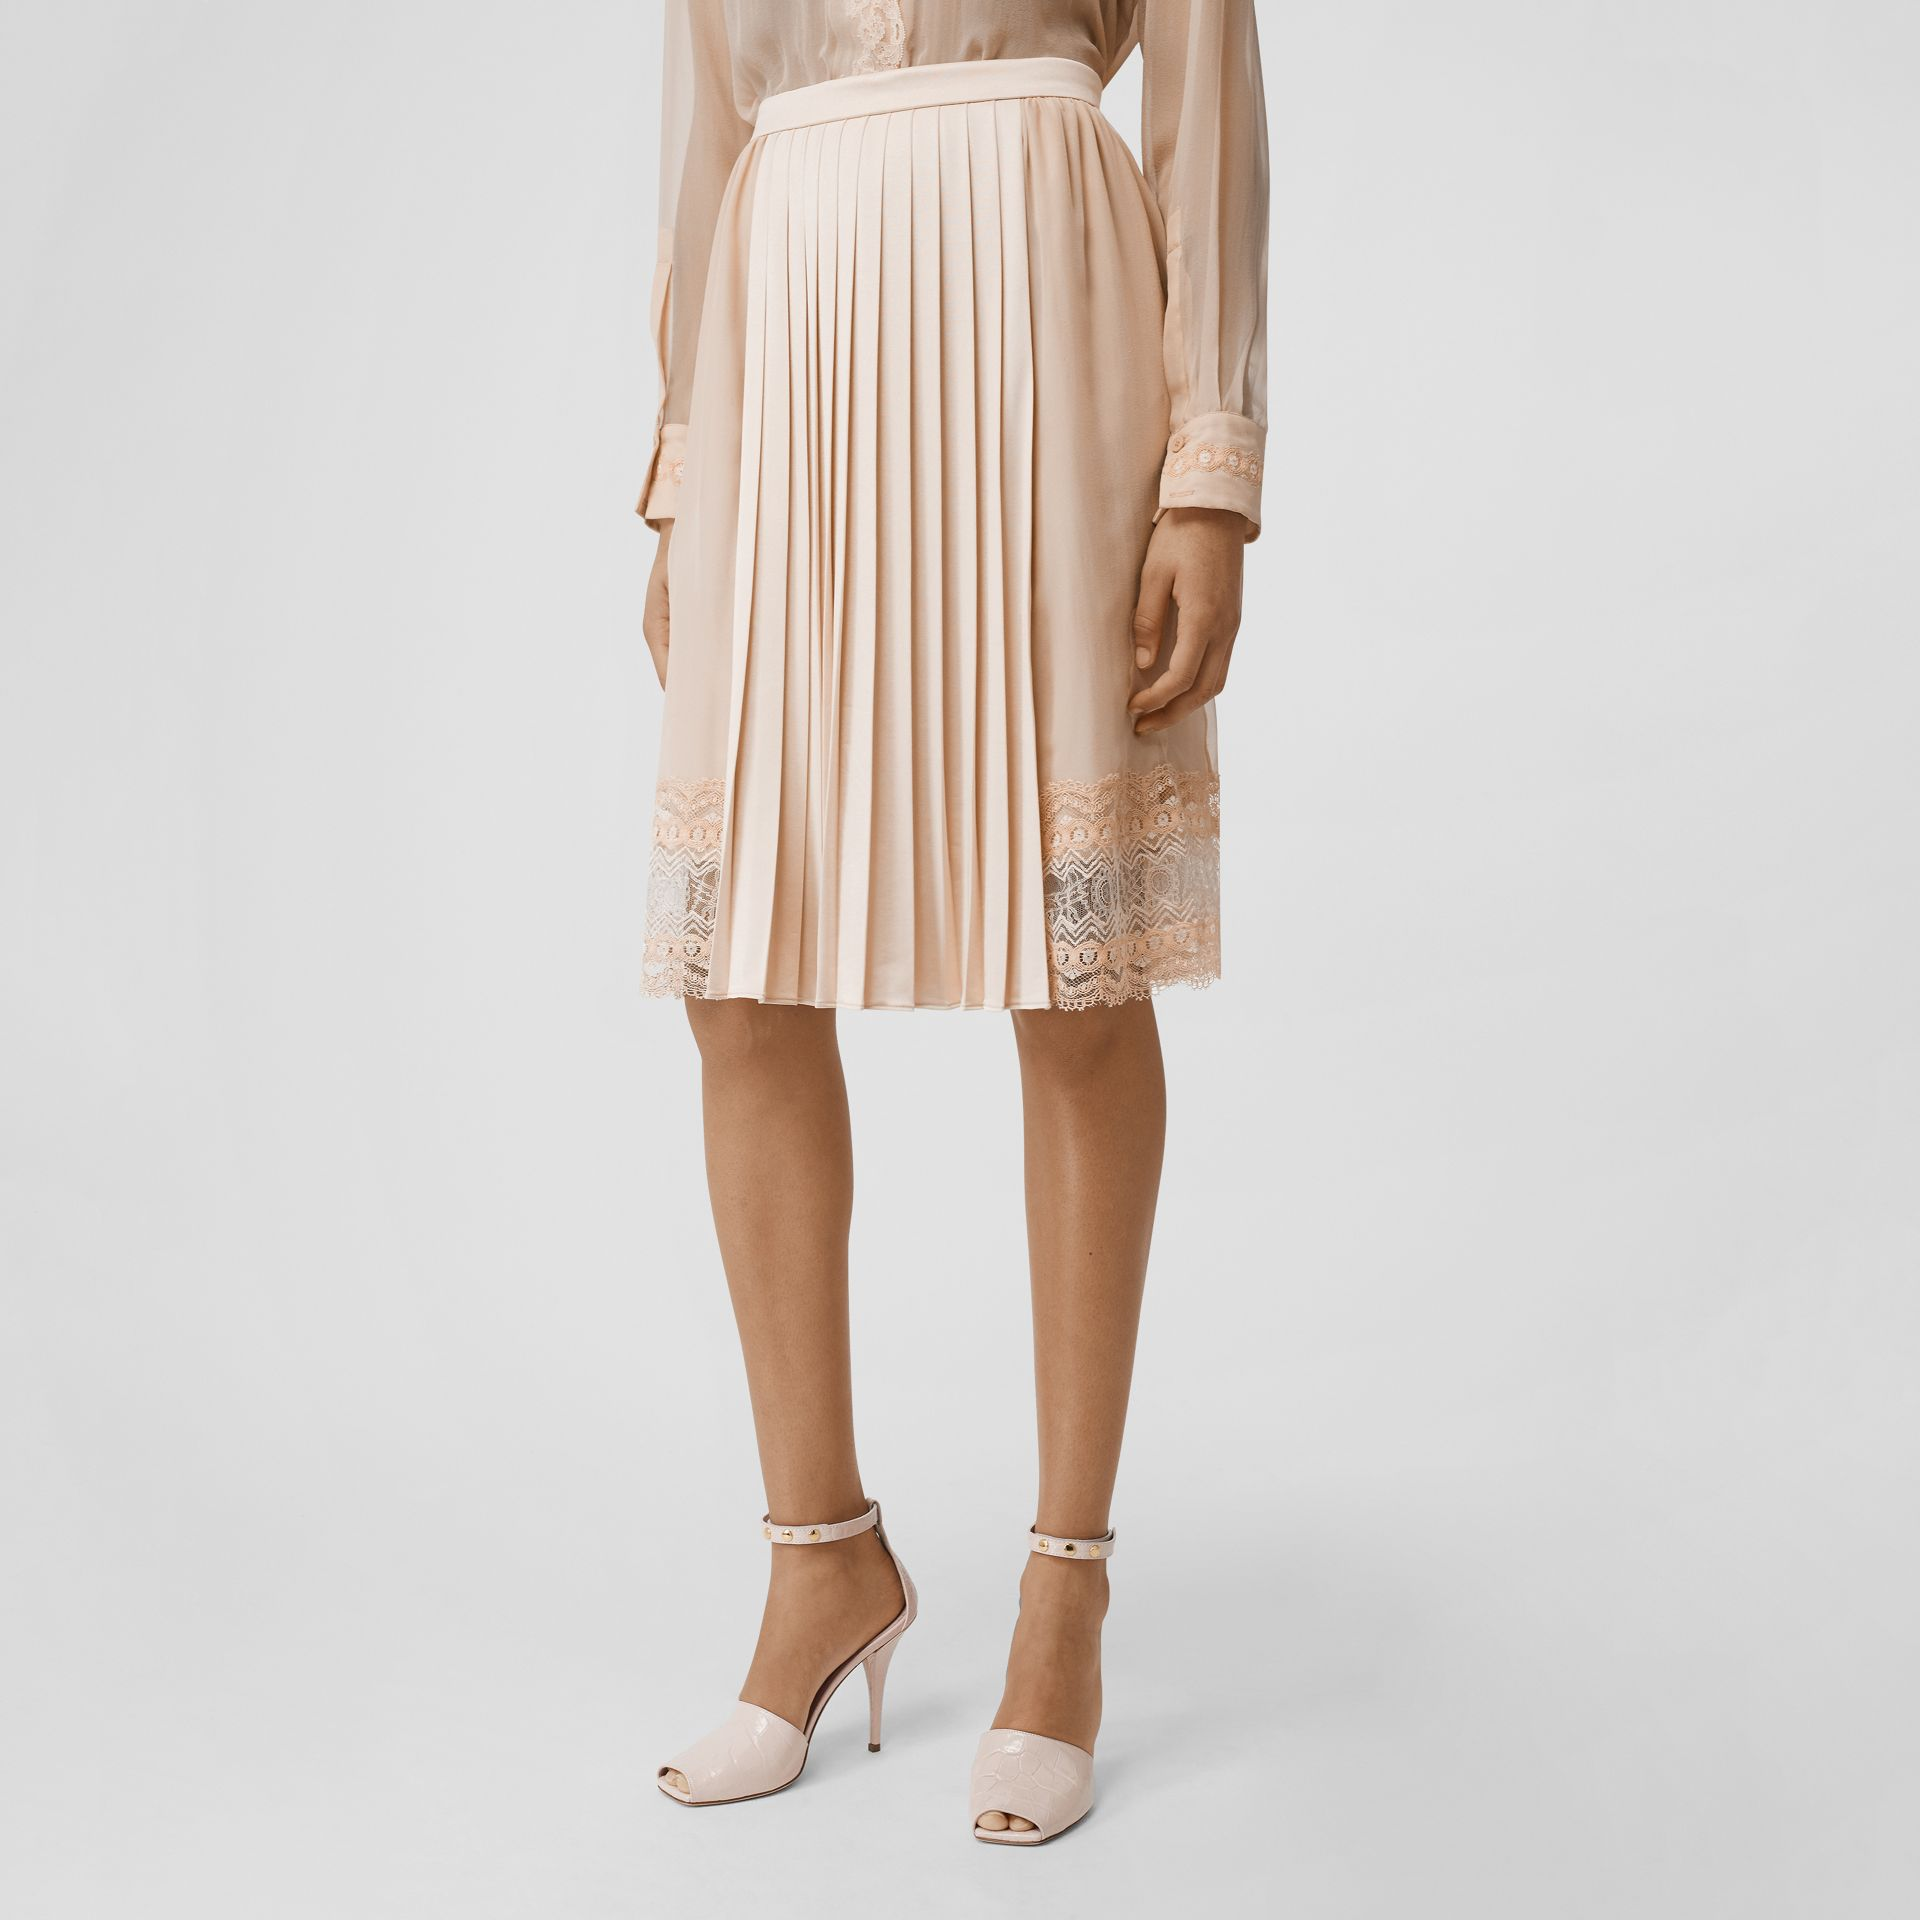 Lace Detail Silk Panel Pleated Skirt in Soft Peach - Women | Burberry - gallery image 2